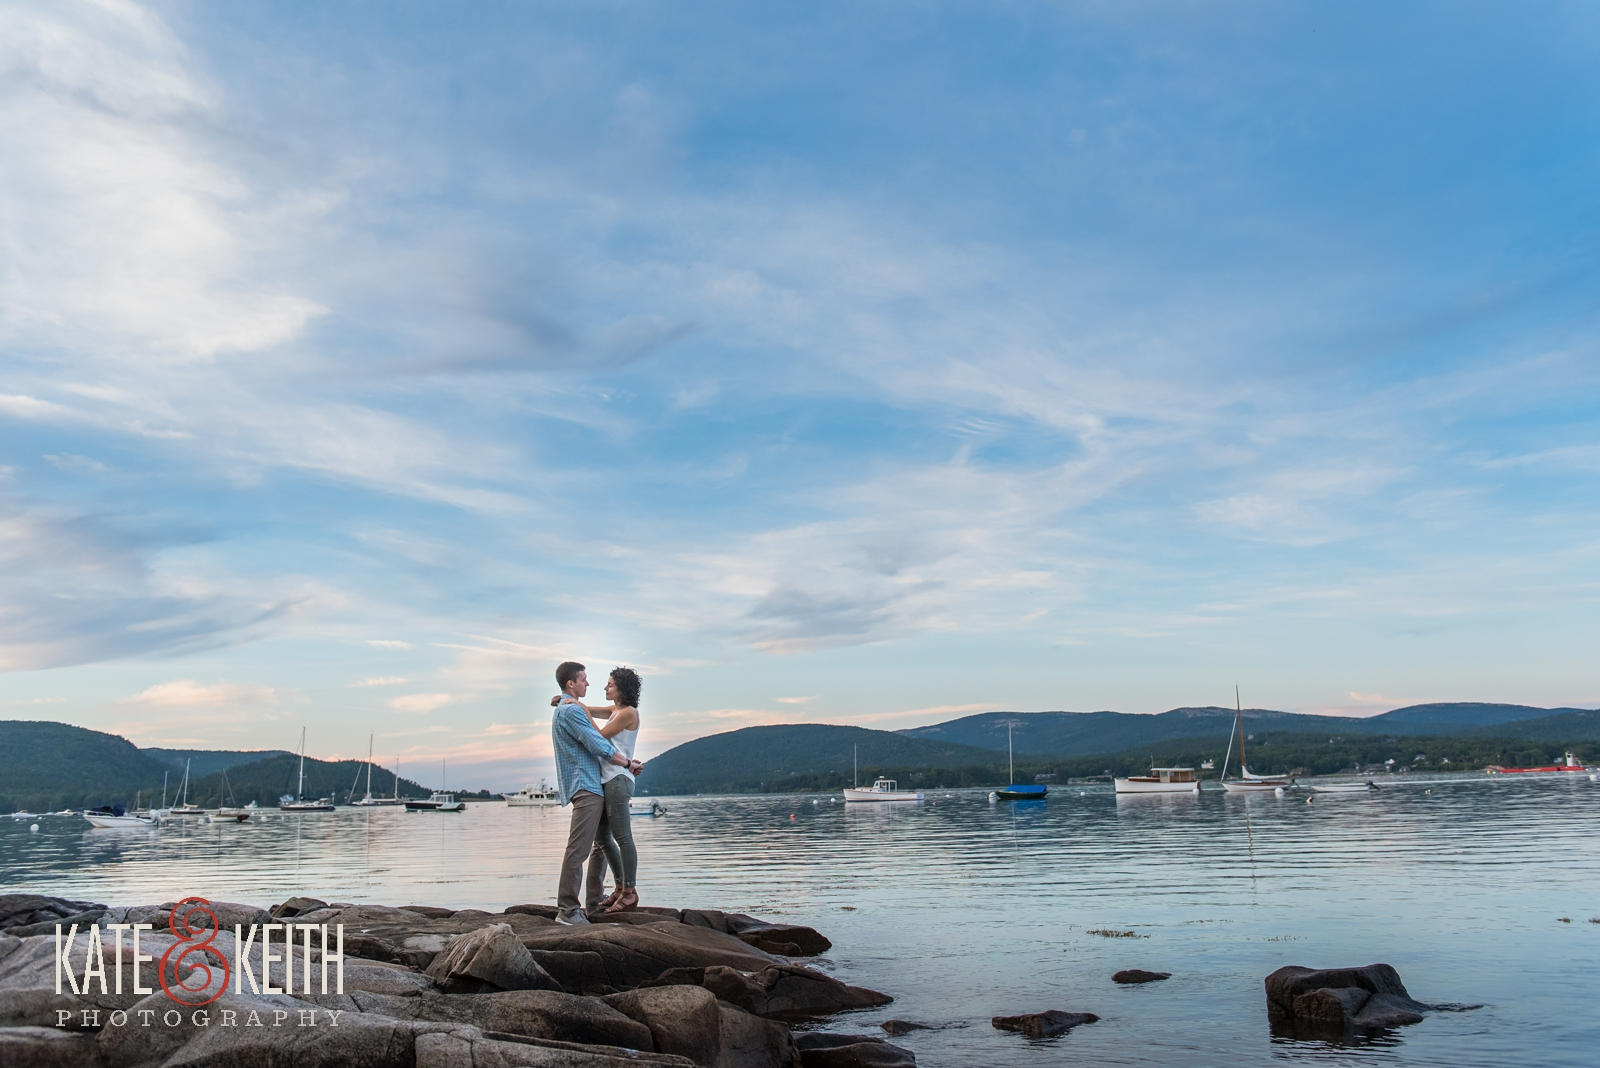 sunset proposal, proposal photos, sunset engagement, surprise proposal, proposal in Acadia National Park, Southwest Harbor, Mount Desert Island, seaside, sunset proposal, engagement, getting engaged in Acadia National Park, rowboat, coastal Maine, New England, sailboats, dock, waterfront engagement